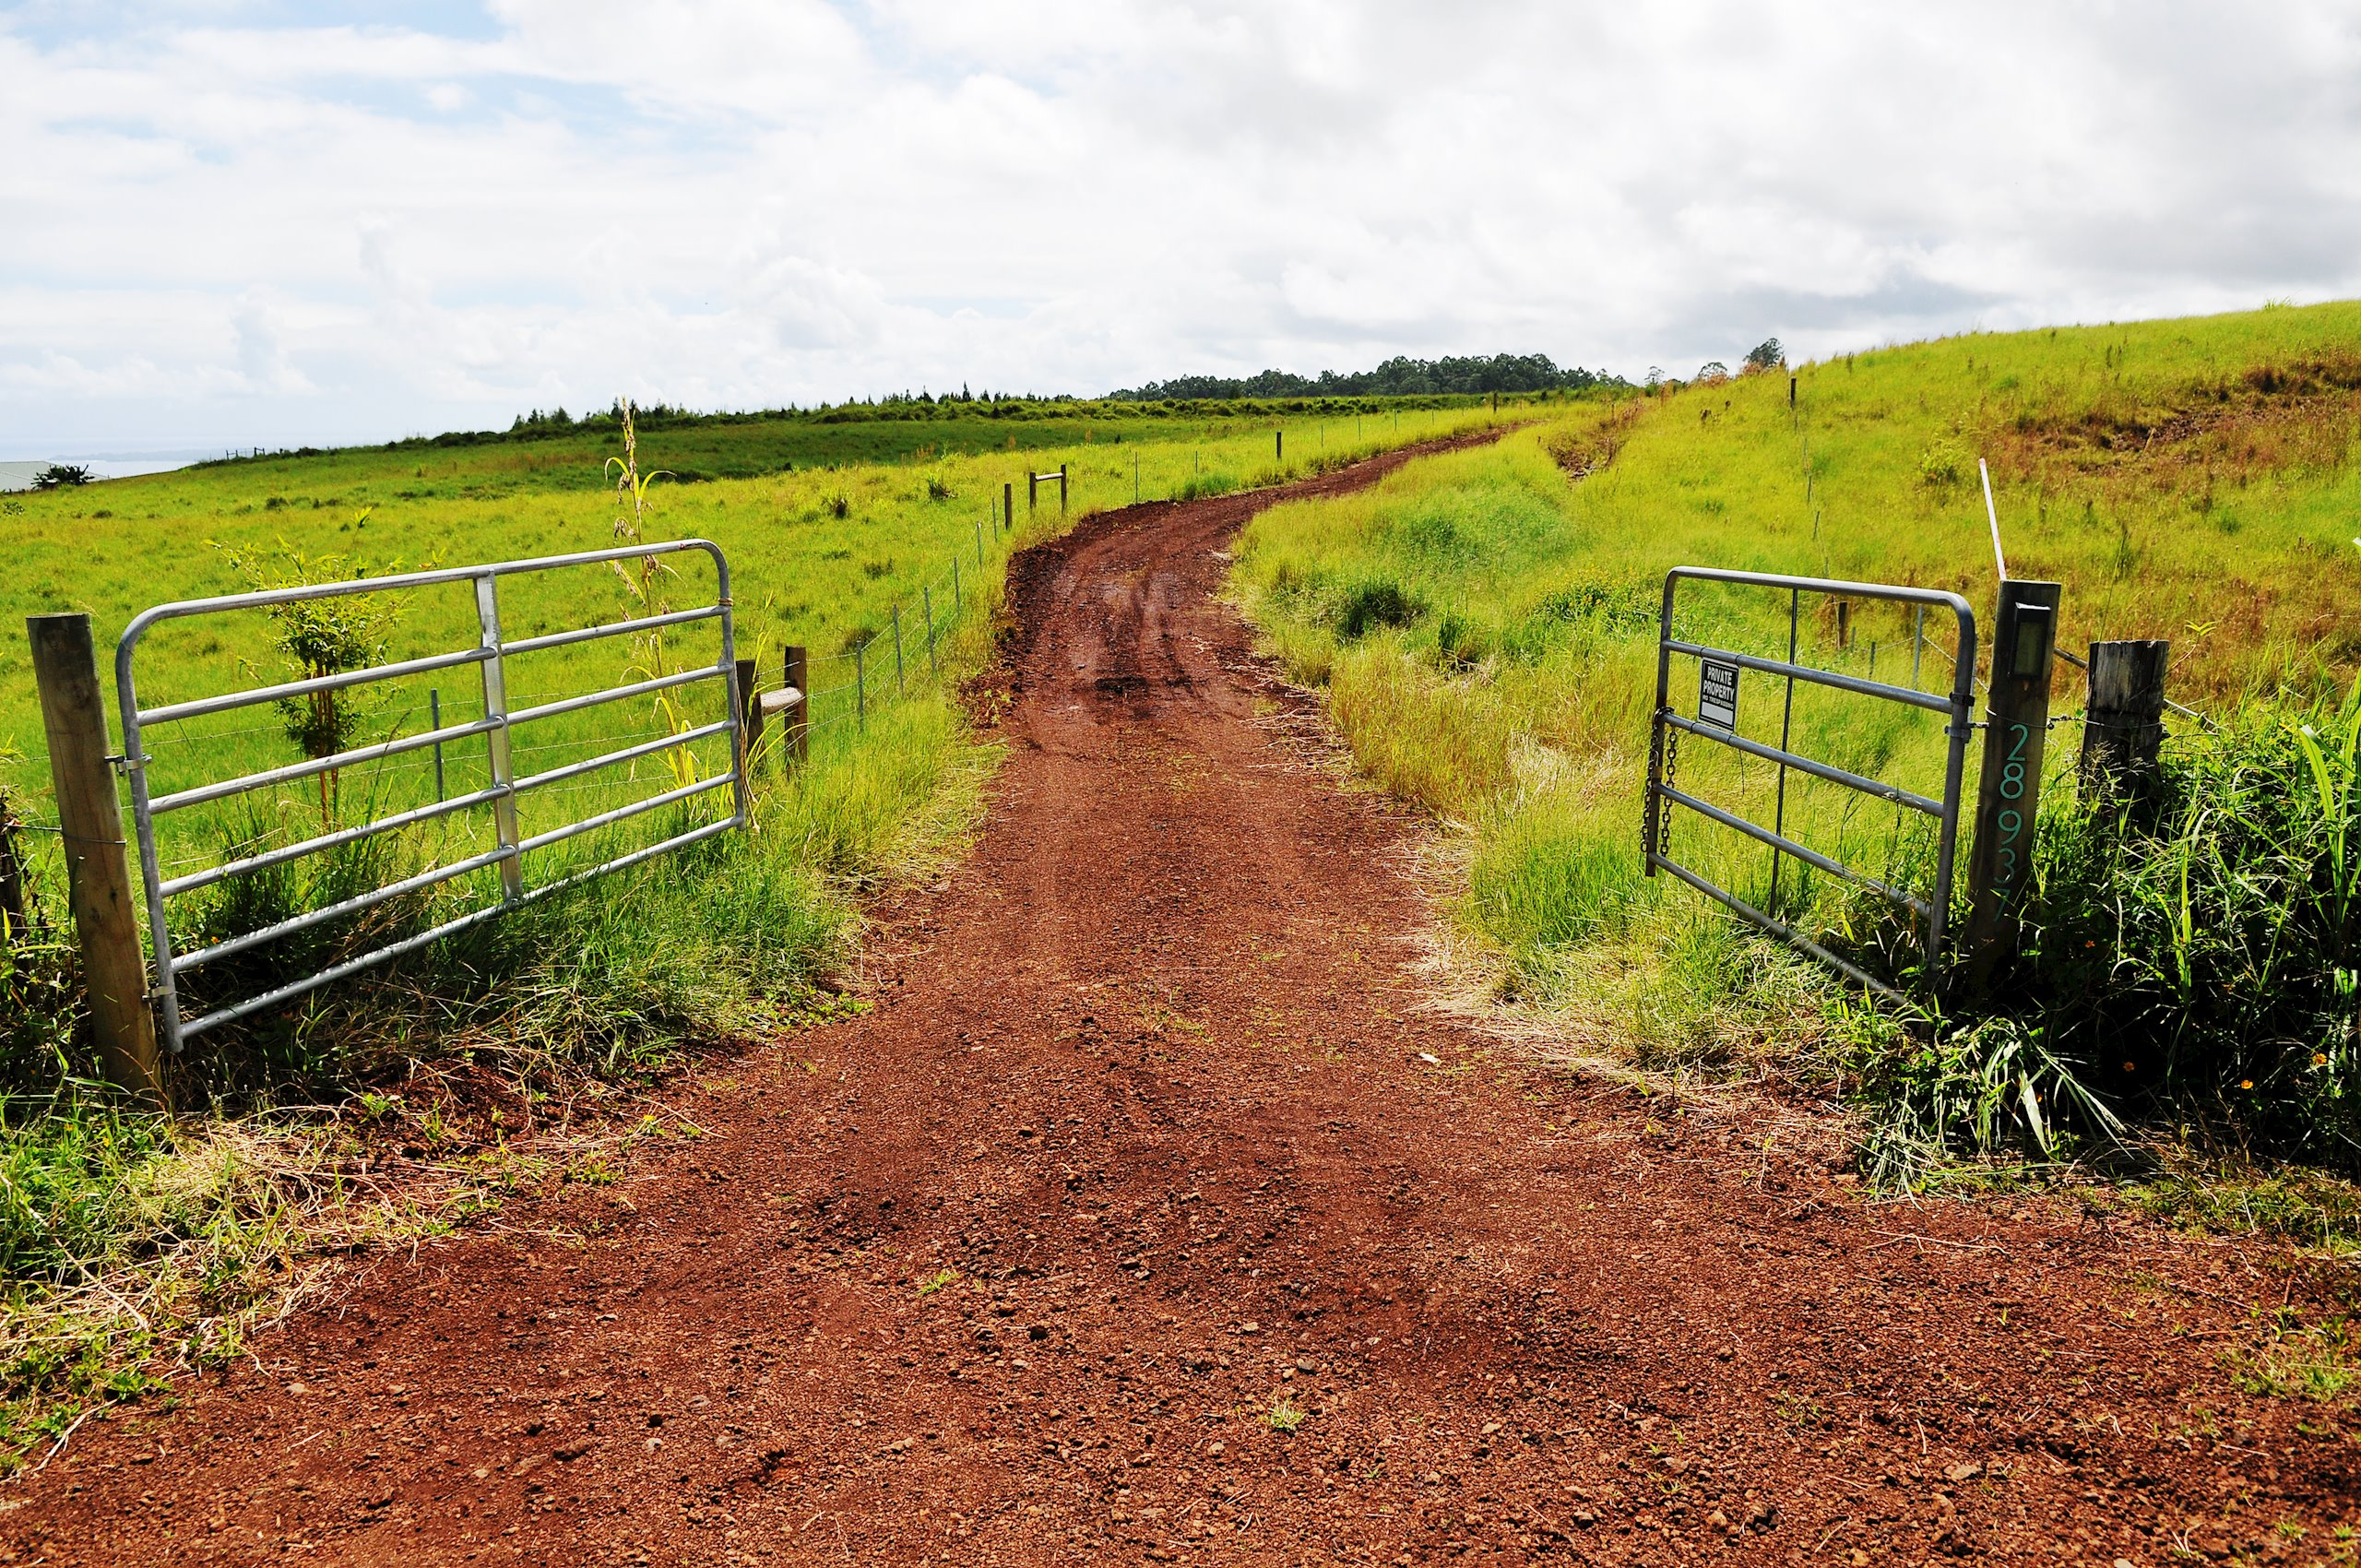 Private entrance driveway from paved County road